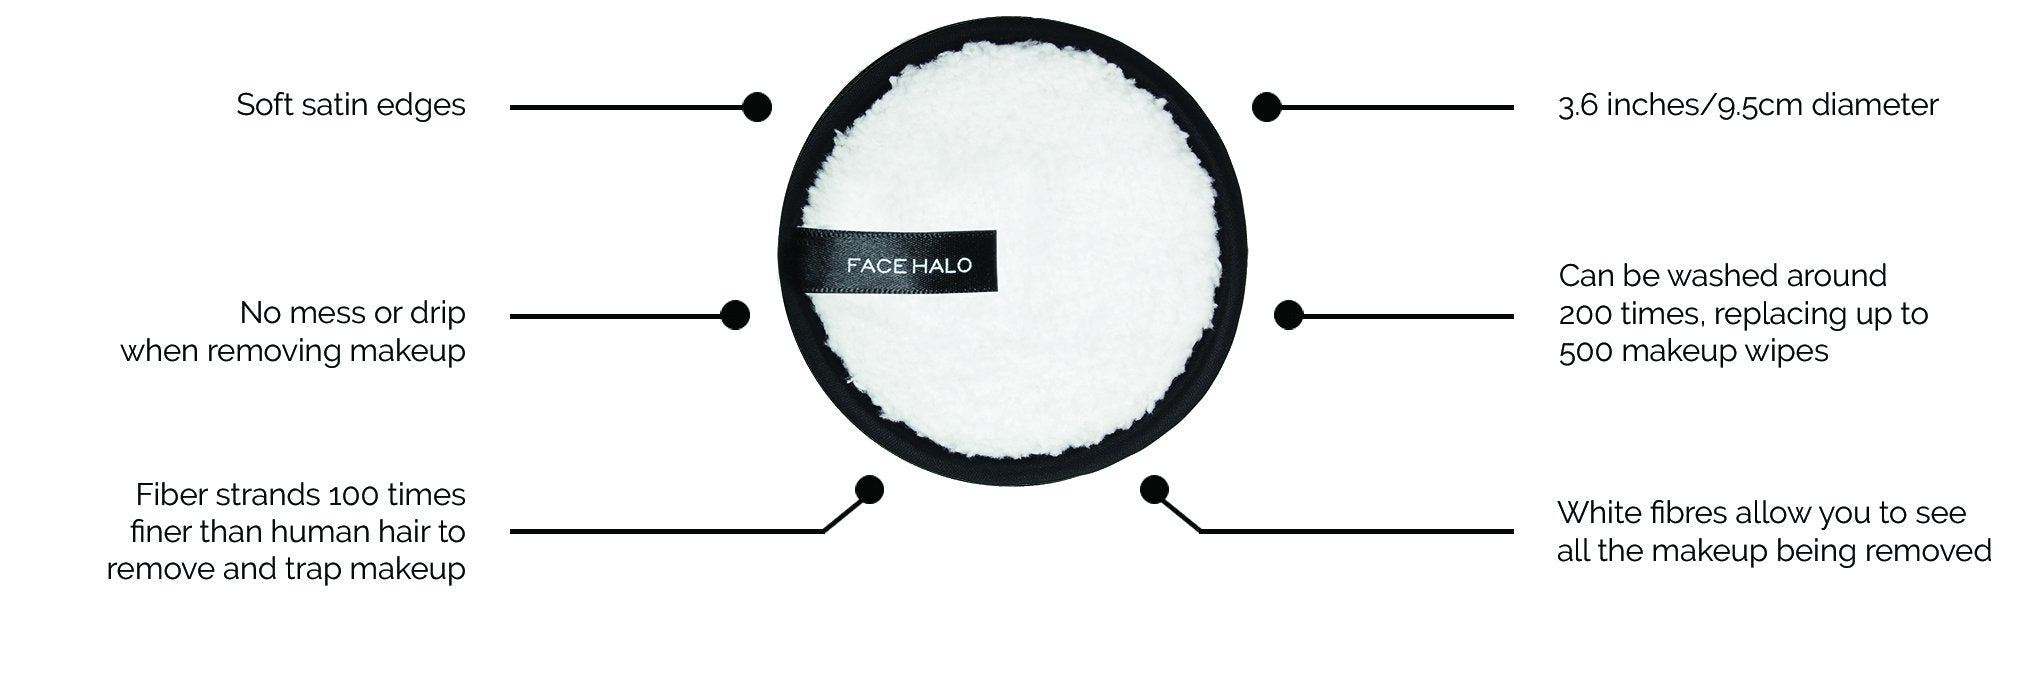 Miraculous Face Halo Original Makeup Remover Pack Of 3 Wiring Digital Resources Nekoutcompassionincorg